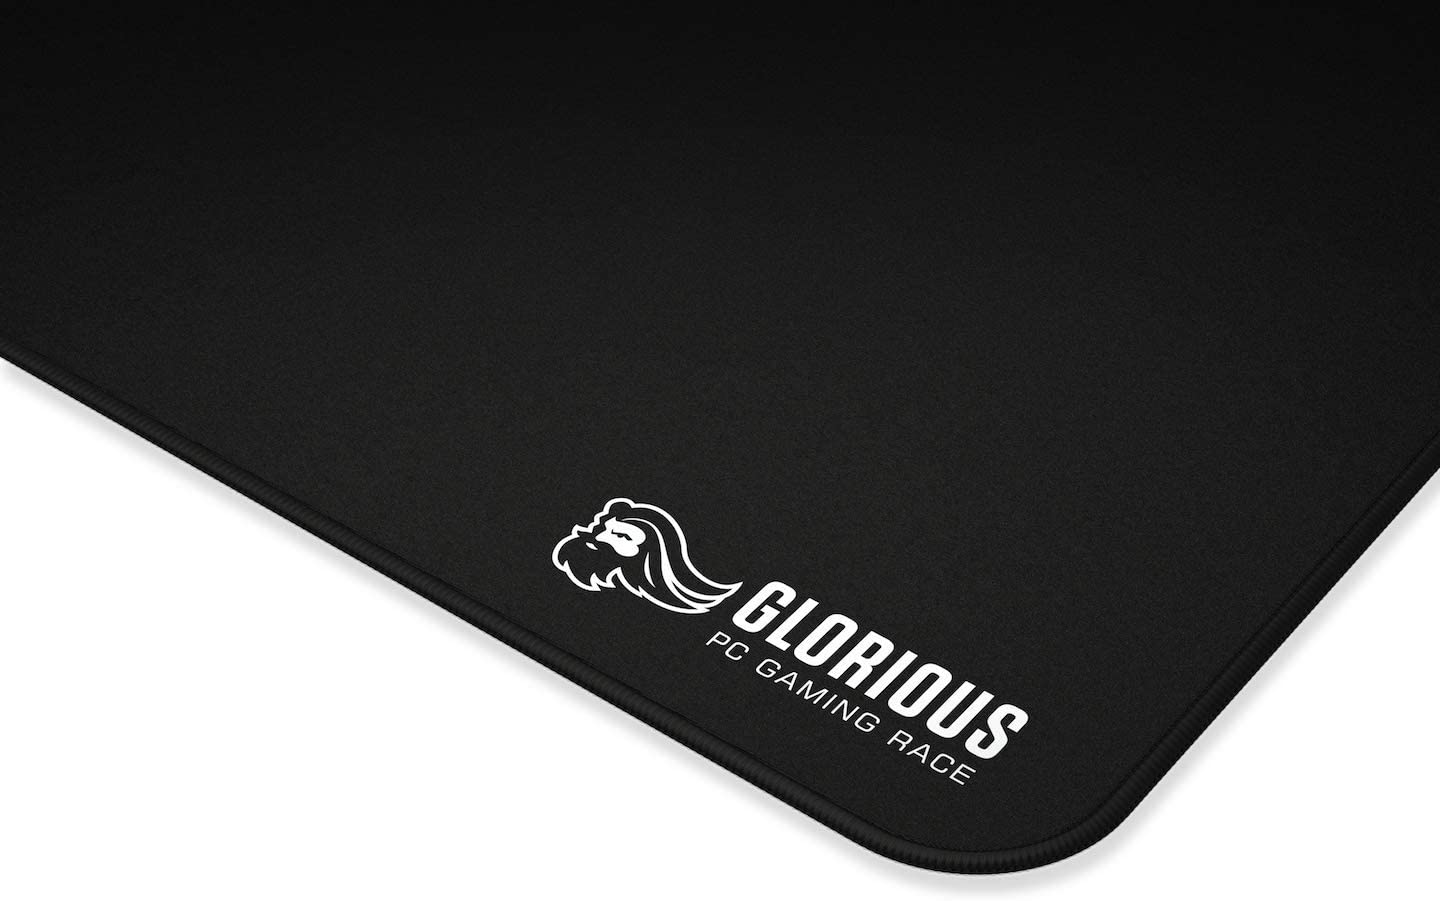 Glorious XXL Extended Gaming Mouse Mat/Pad - Large, Wide (XLarge) Black Cloth Mousepad, Stitched Edges | 18x36